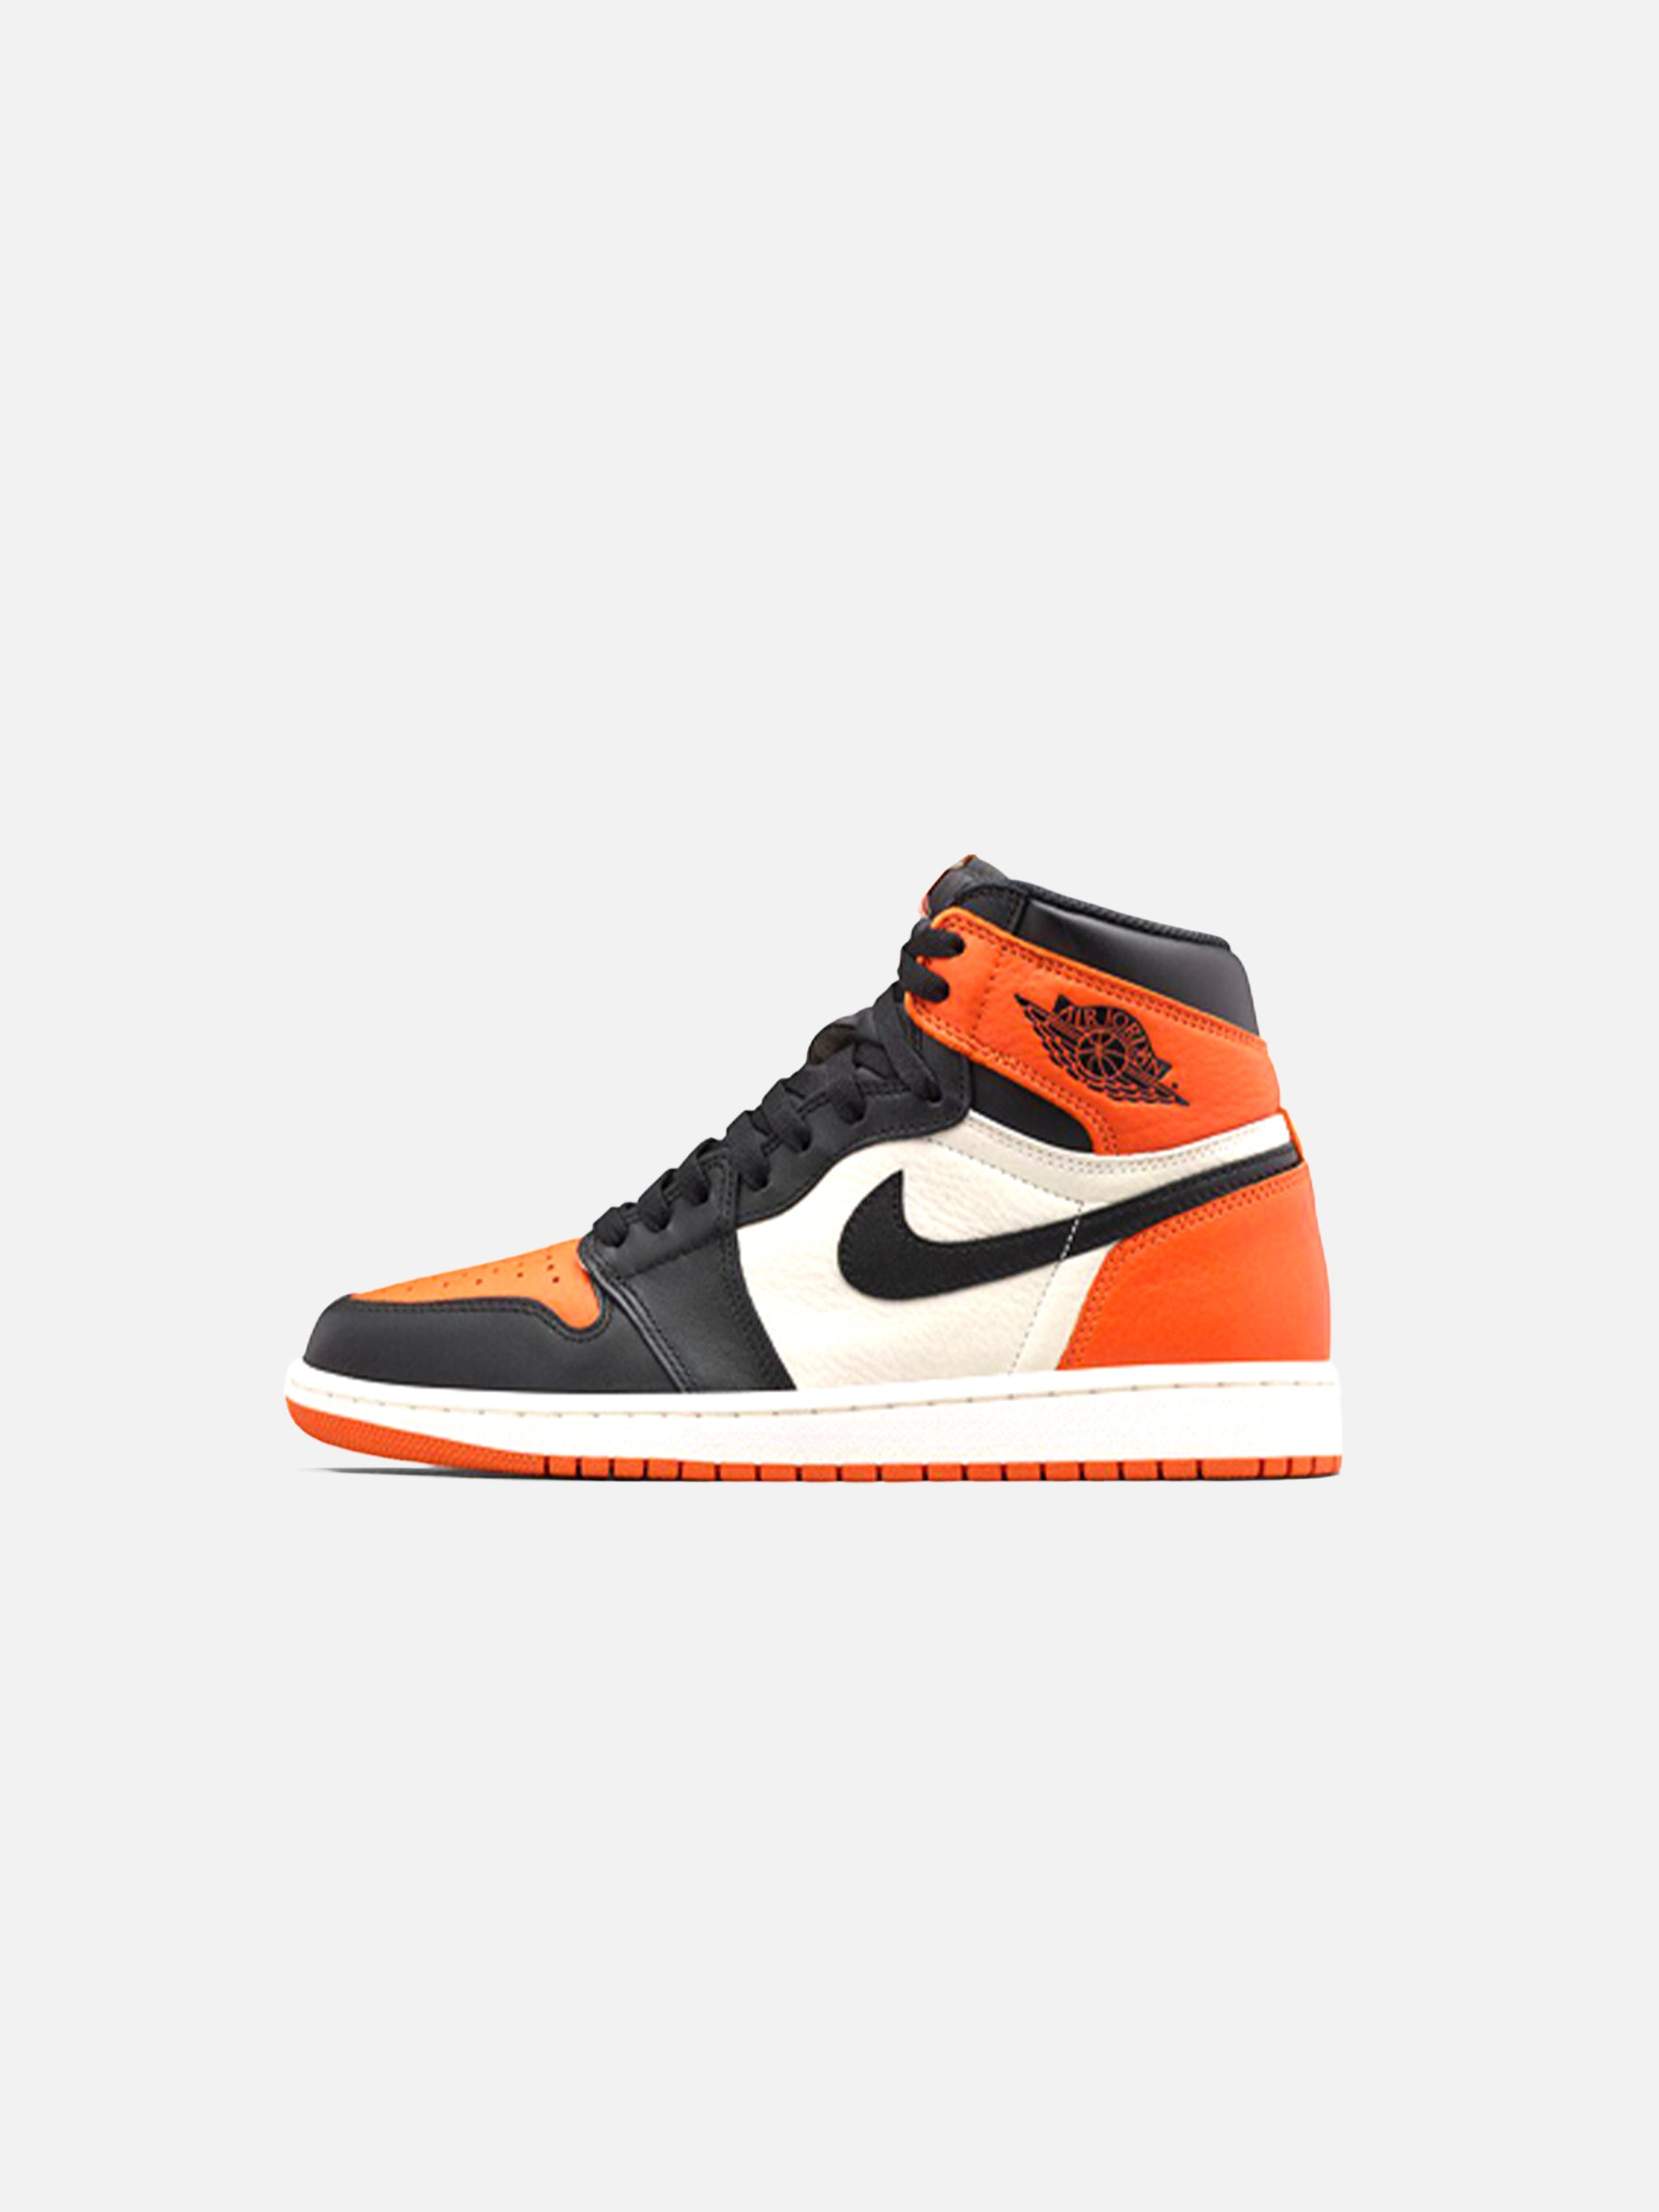 Nike Air Jordan 1 Retro Shattered Backboard